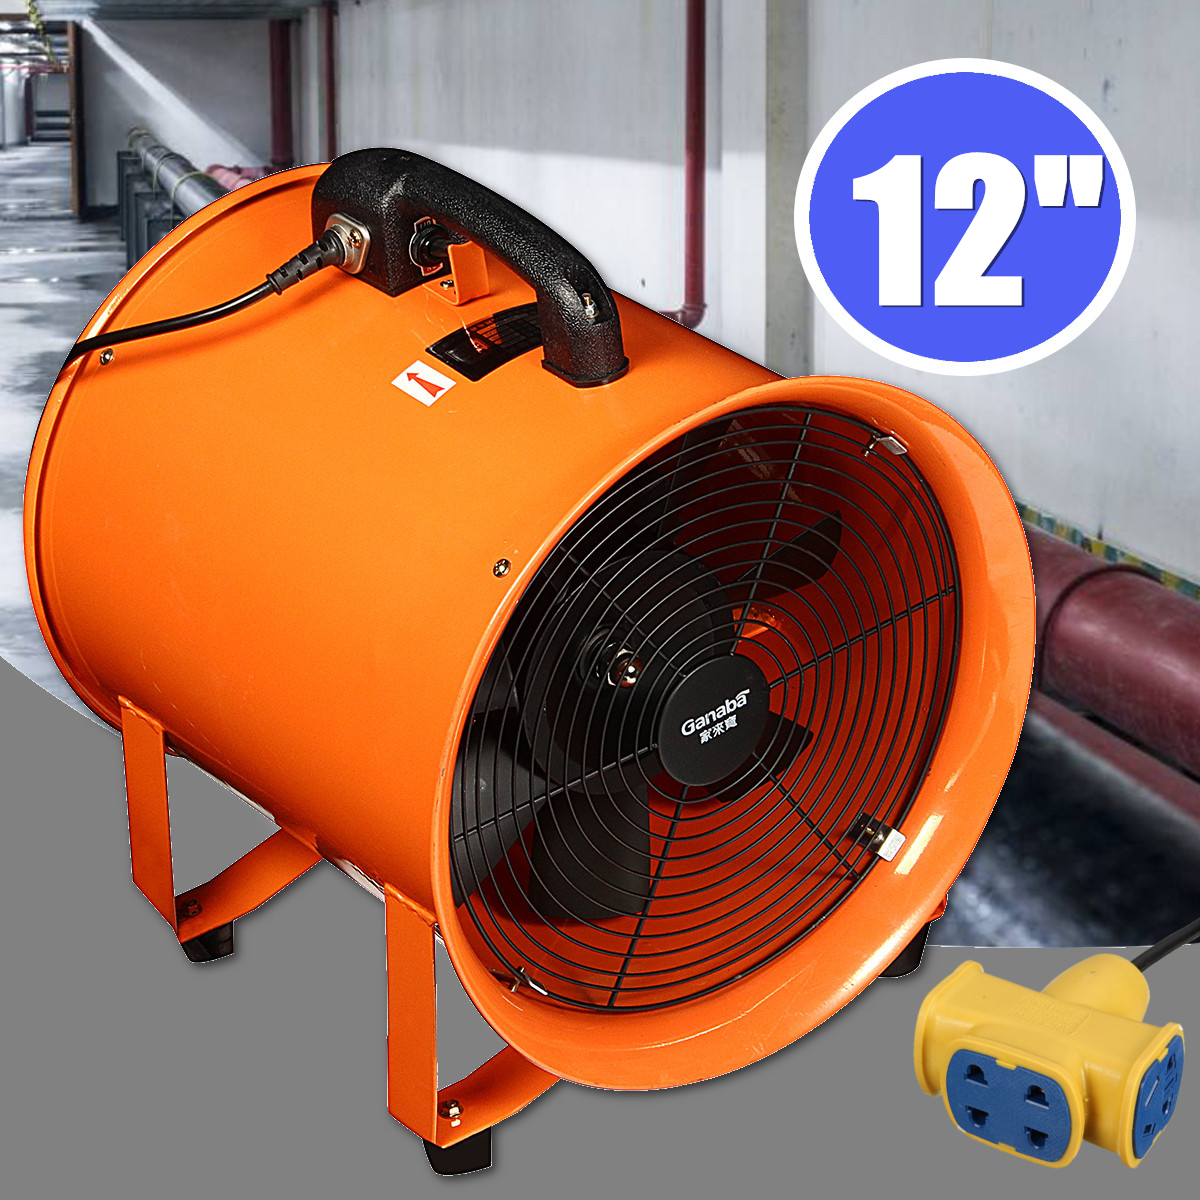 Portable Extractor Fan 12 Industrial Portable Extractor Fan Ventilator Blower Garage